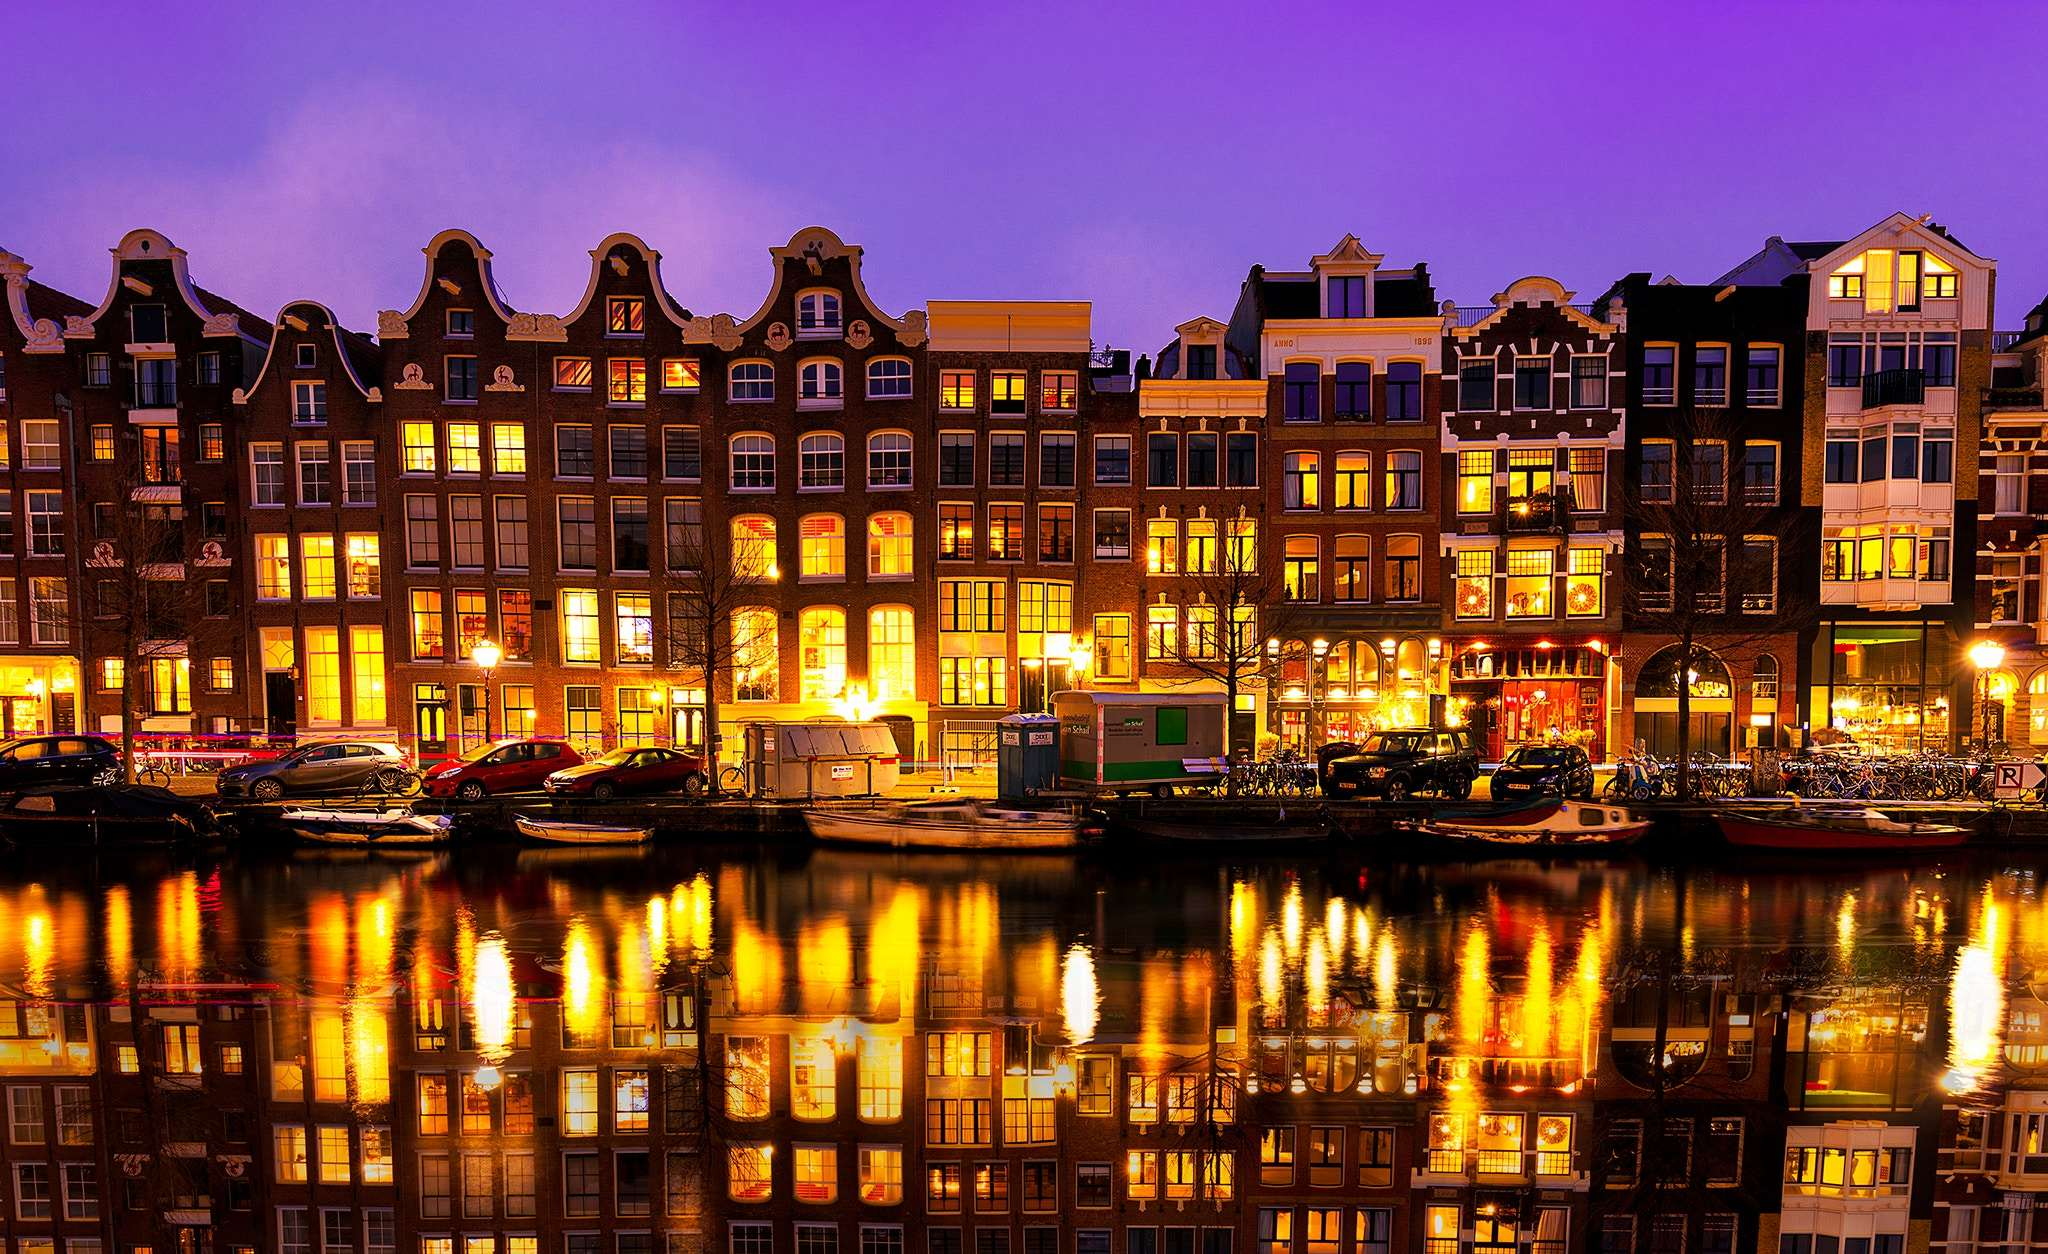 Romantic Amsterdam (QUEST IN TEST MODE) image